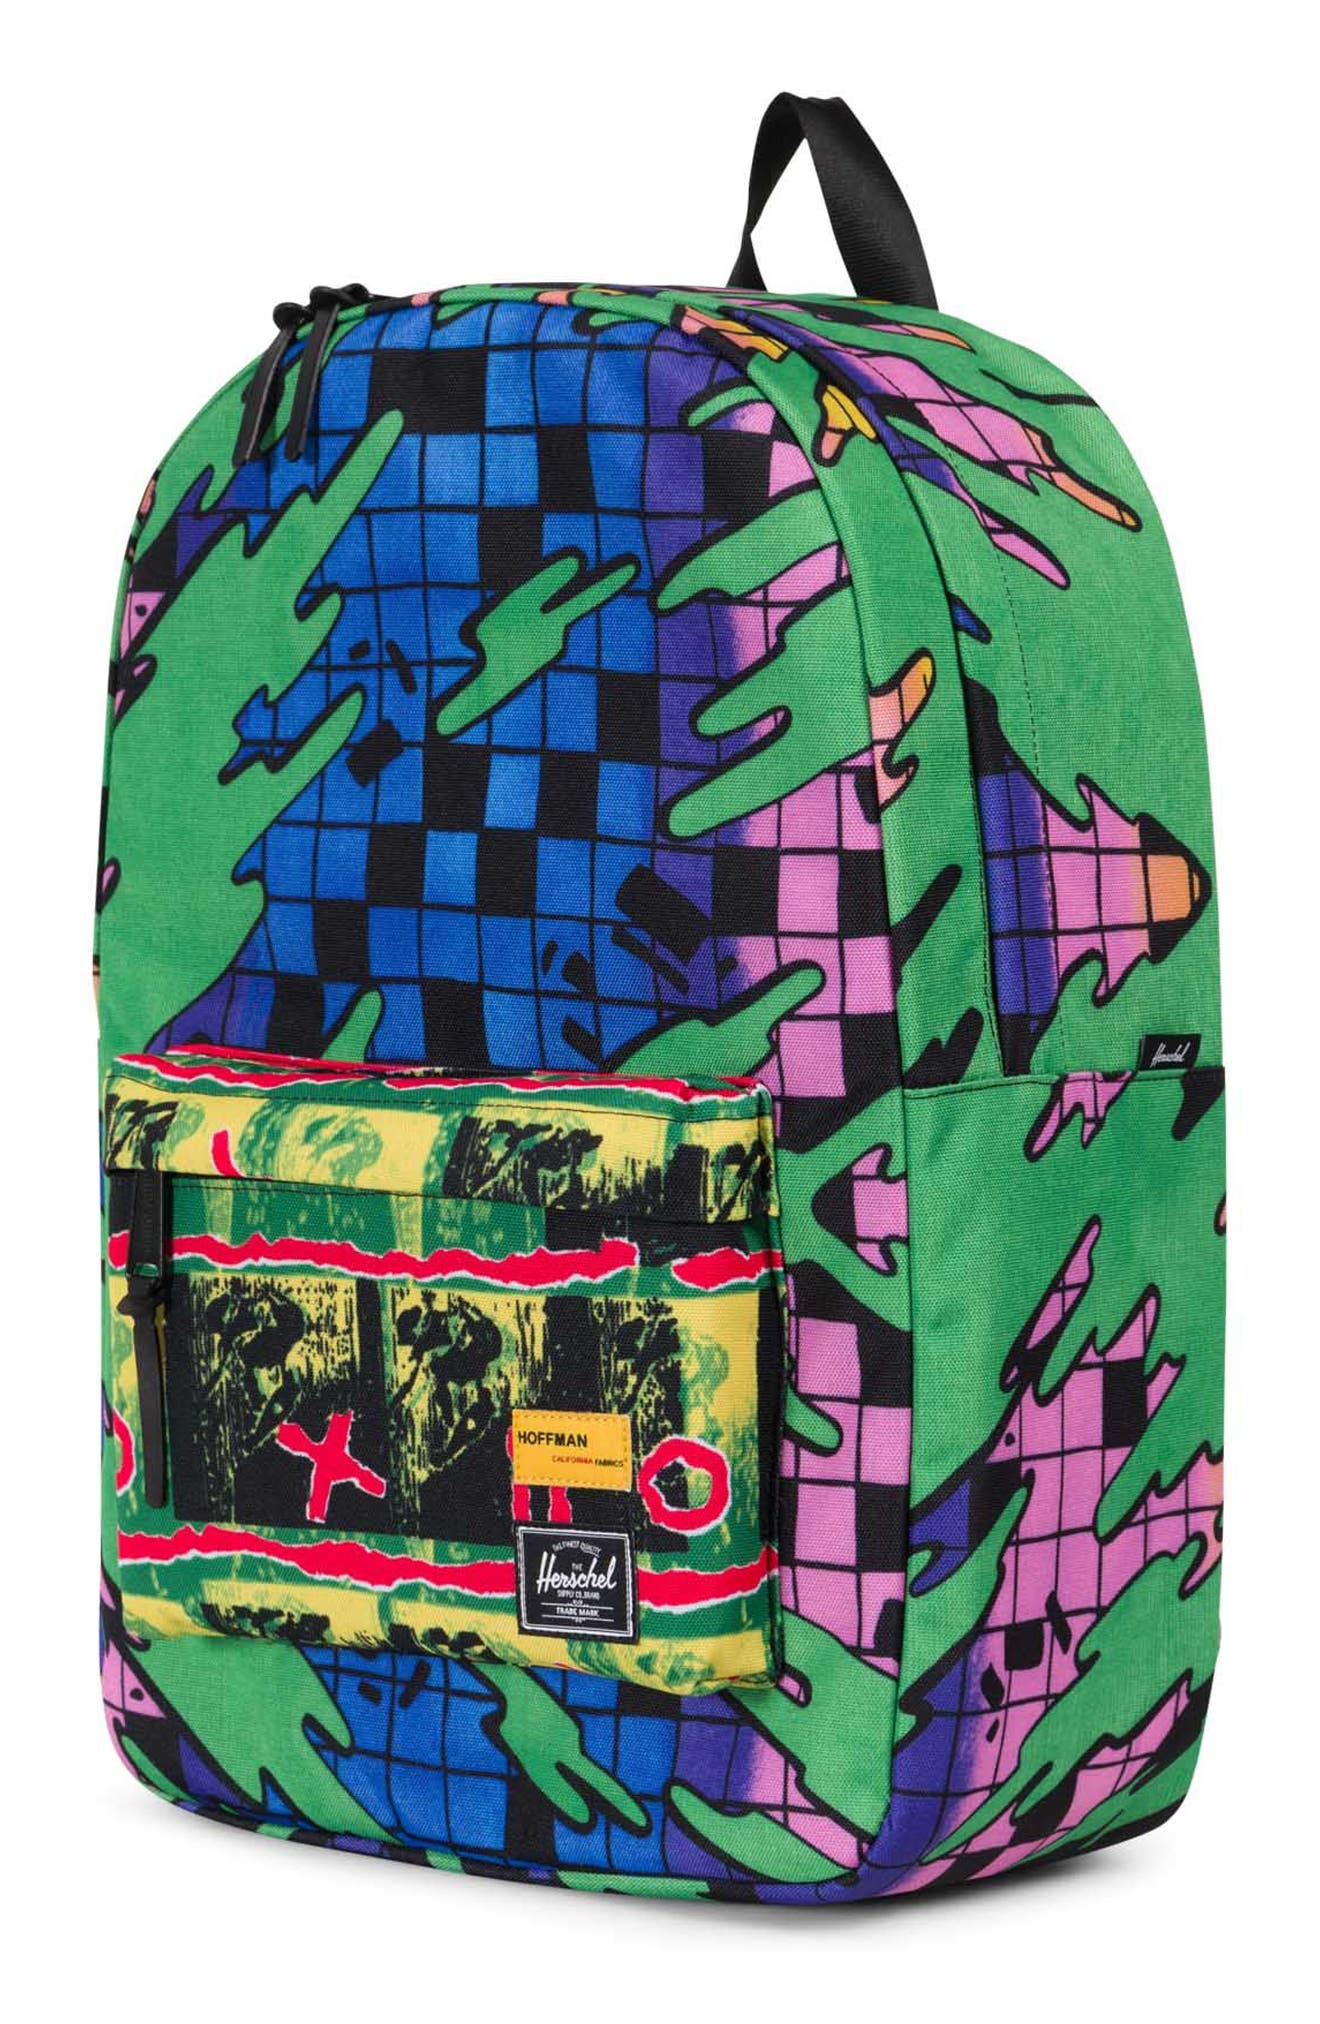 Hoffman Winlaw Backpack,                             Alternate thumbnail 2, color,                             300